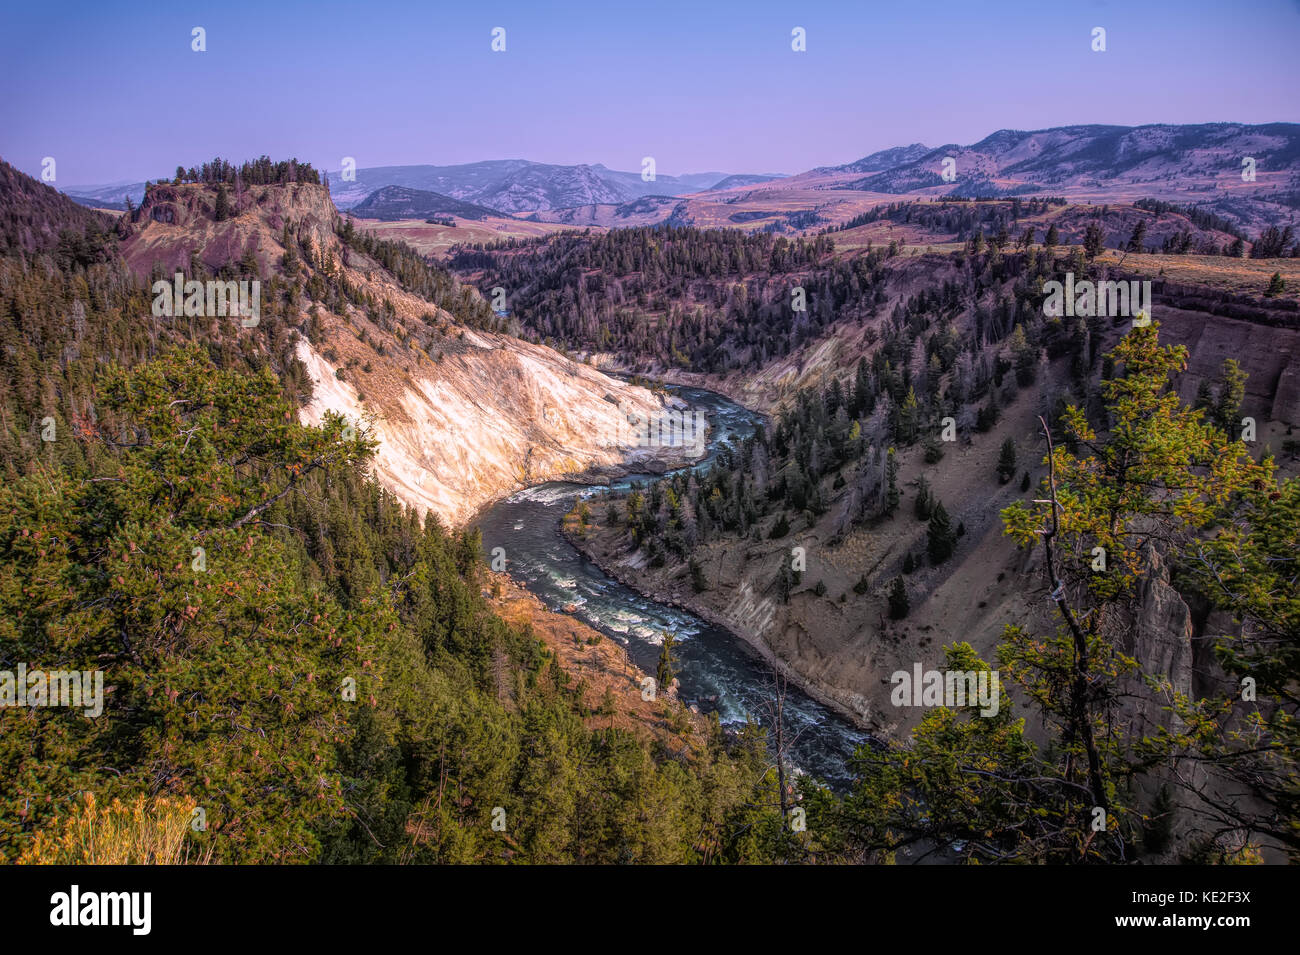 22 août 2017 - Parc national de Yellowstone Photo Stock